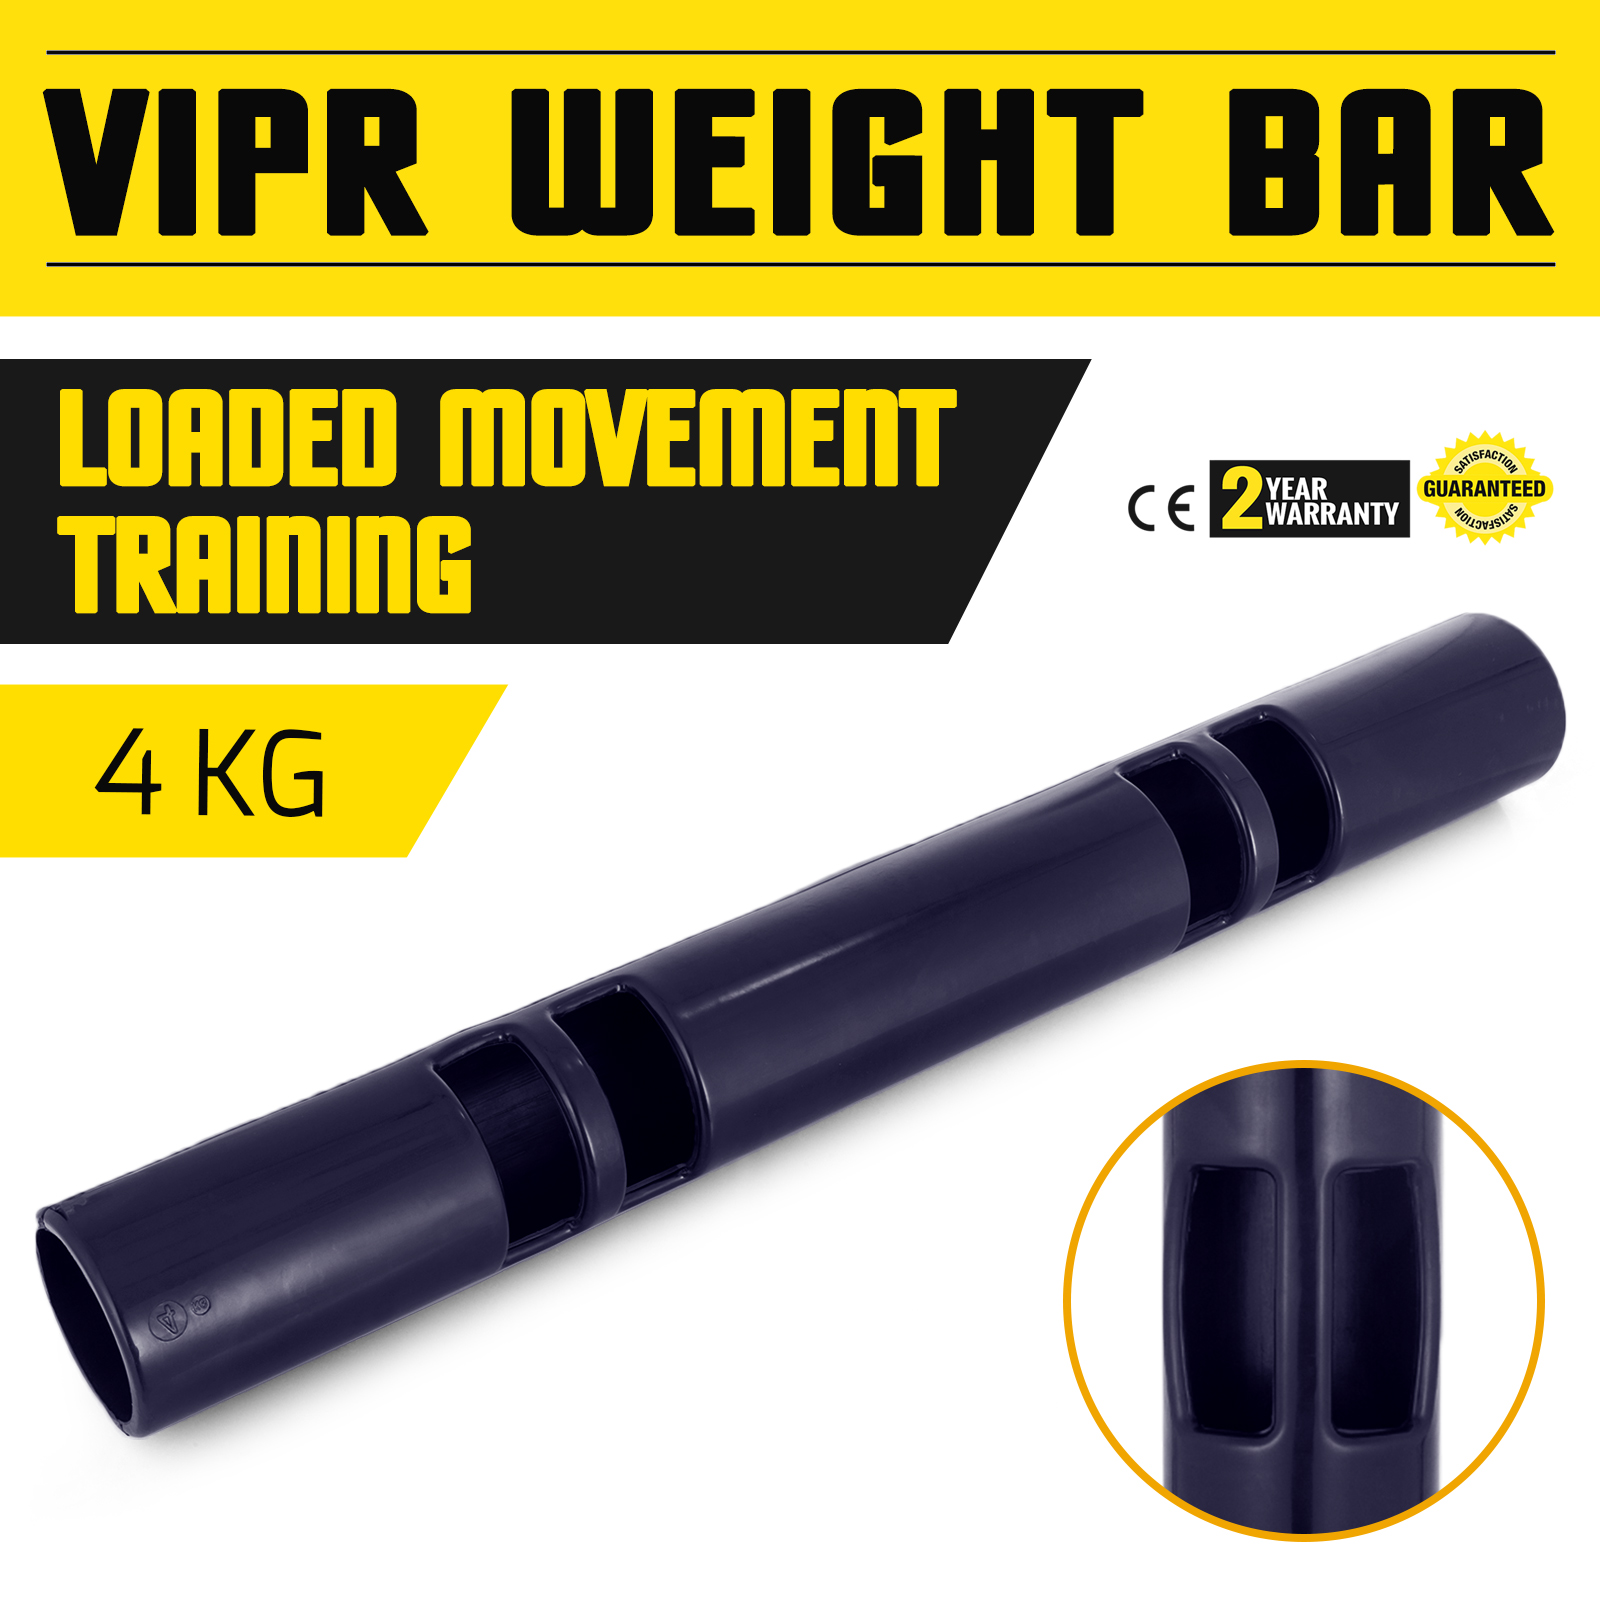 Vipr-Fitpro-Fitness-Tube-Loaded-Movement-Training-weightlifting-4-6-8-10-12-Kg thumbnail 13